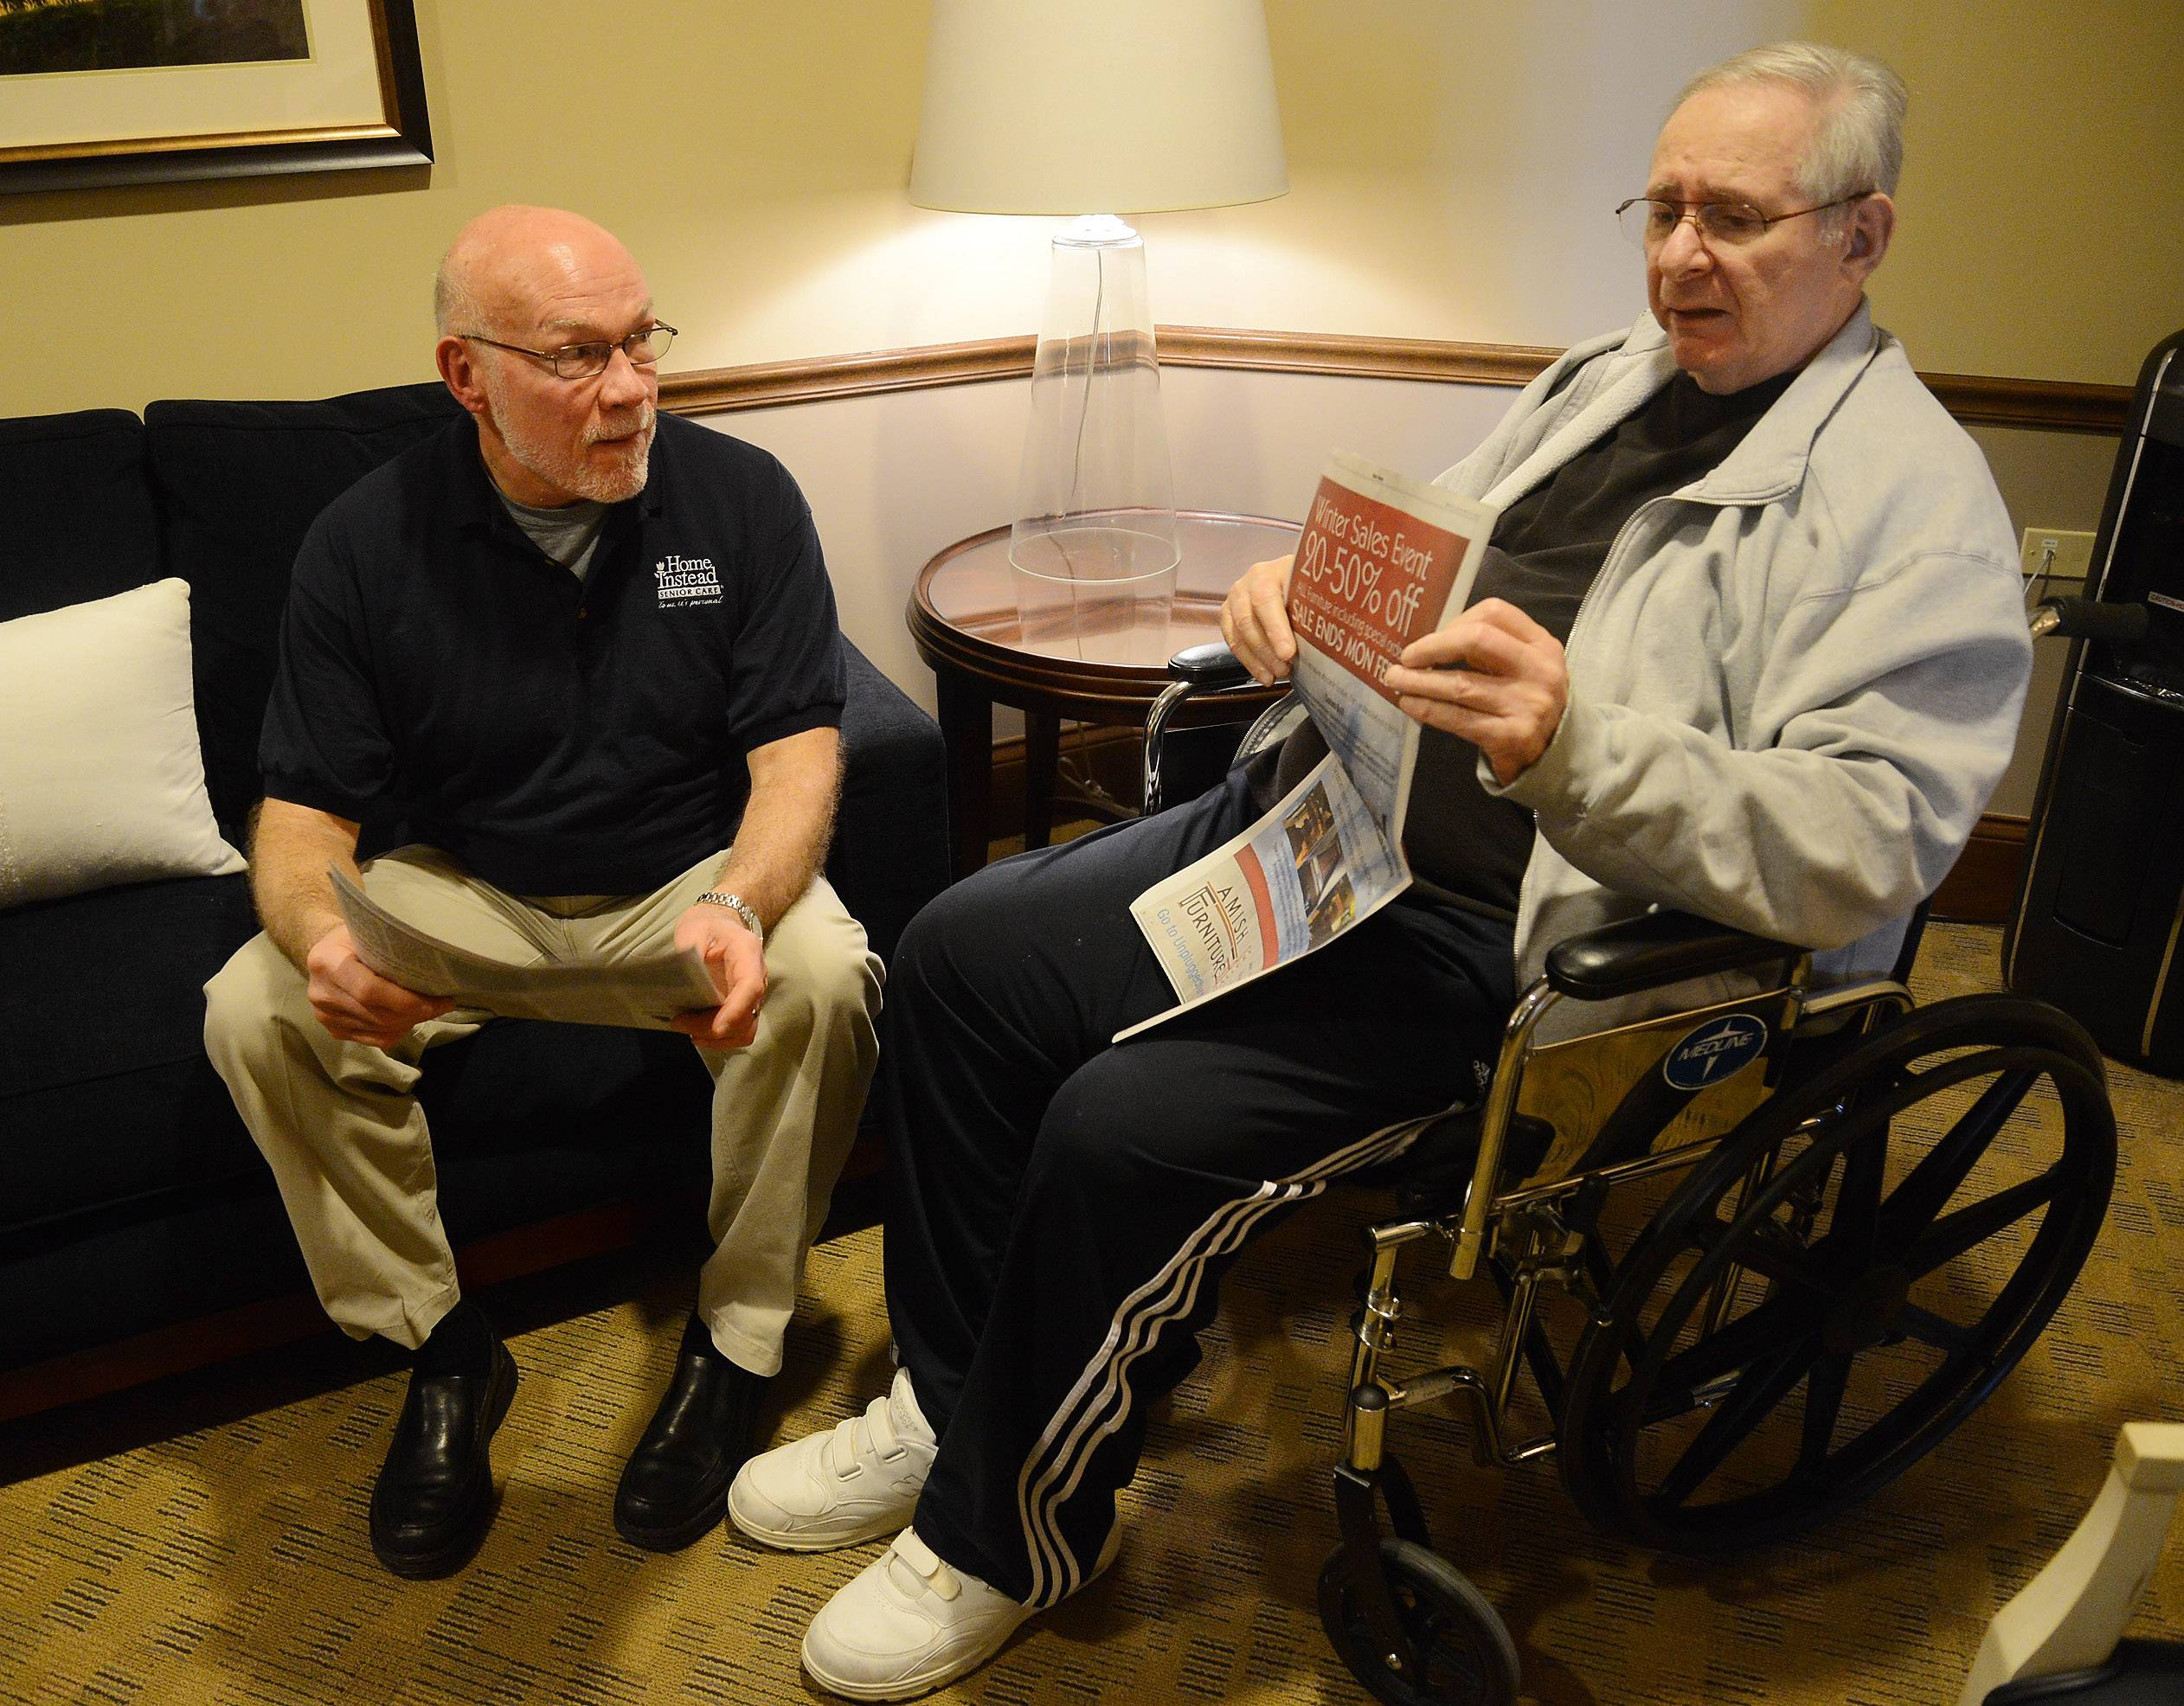 Caregiver Bruce Cruz, left, from Home Instead spends time with his client, Jerry Miller, reading the newspaper together, which they often do.